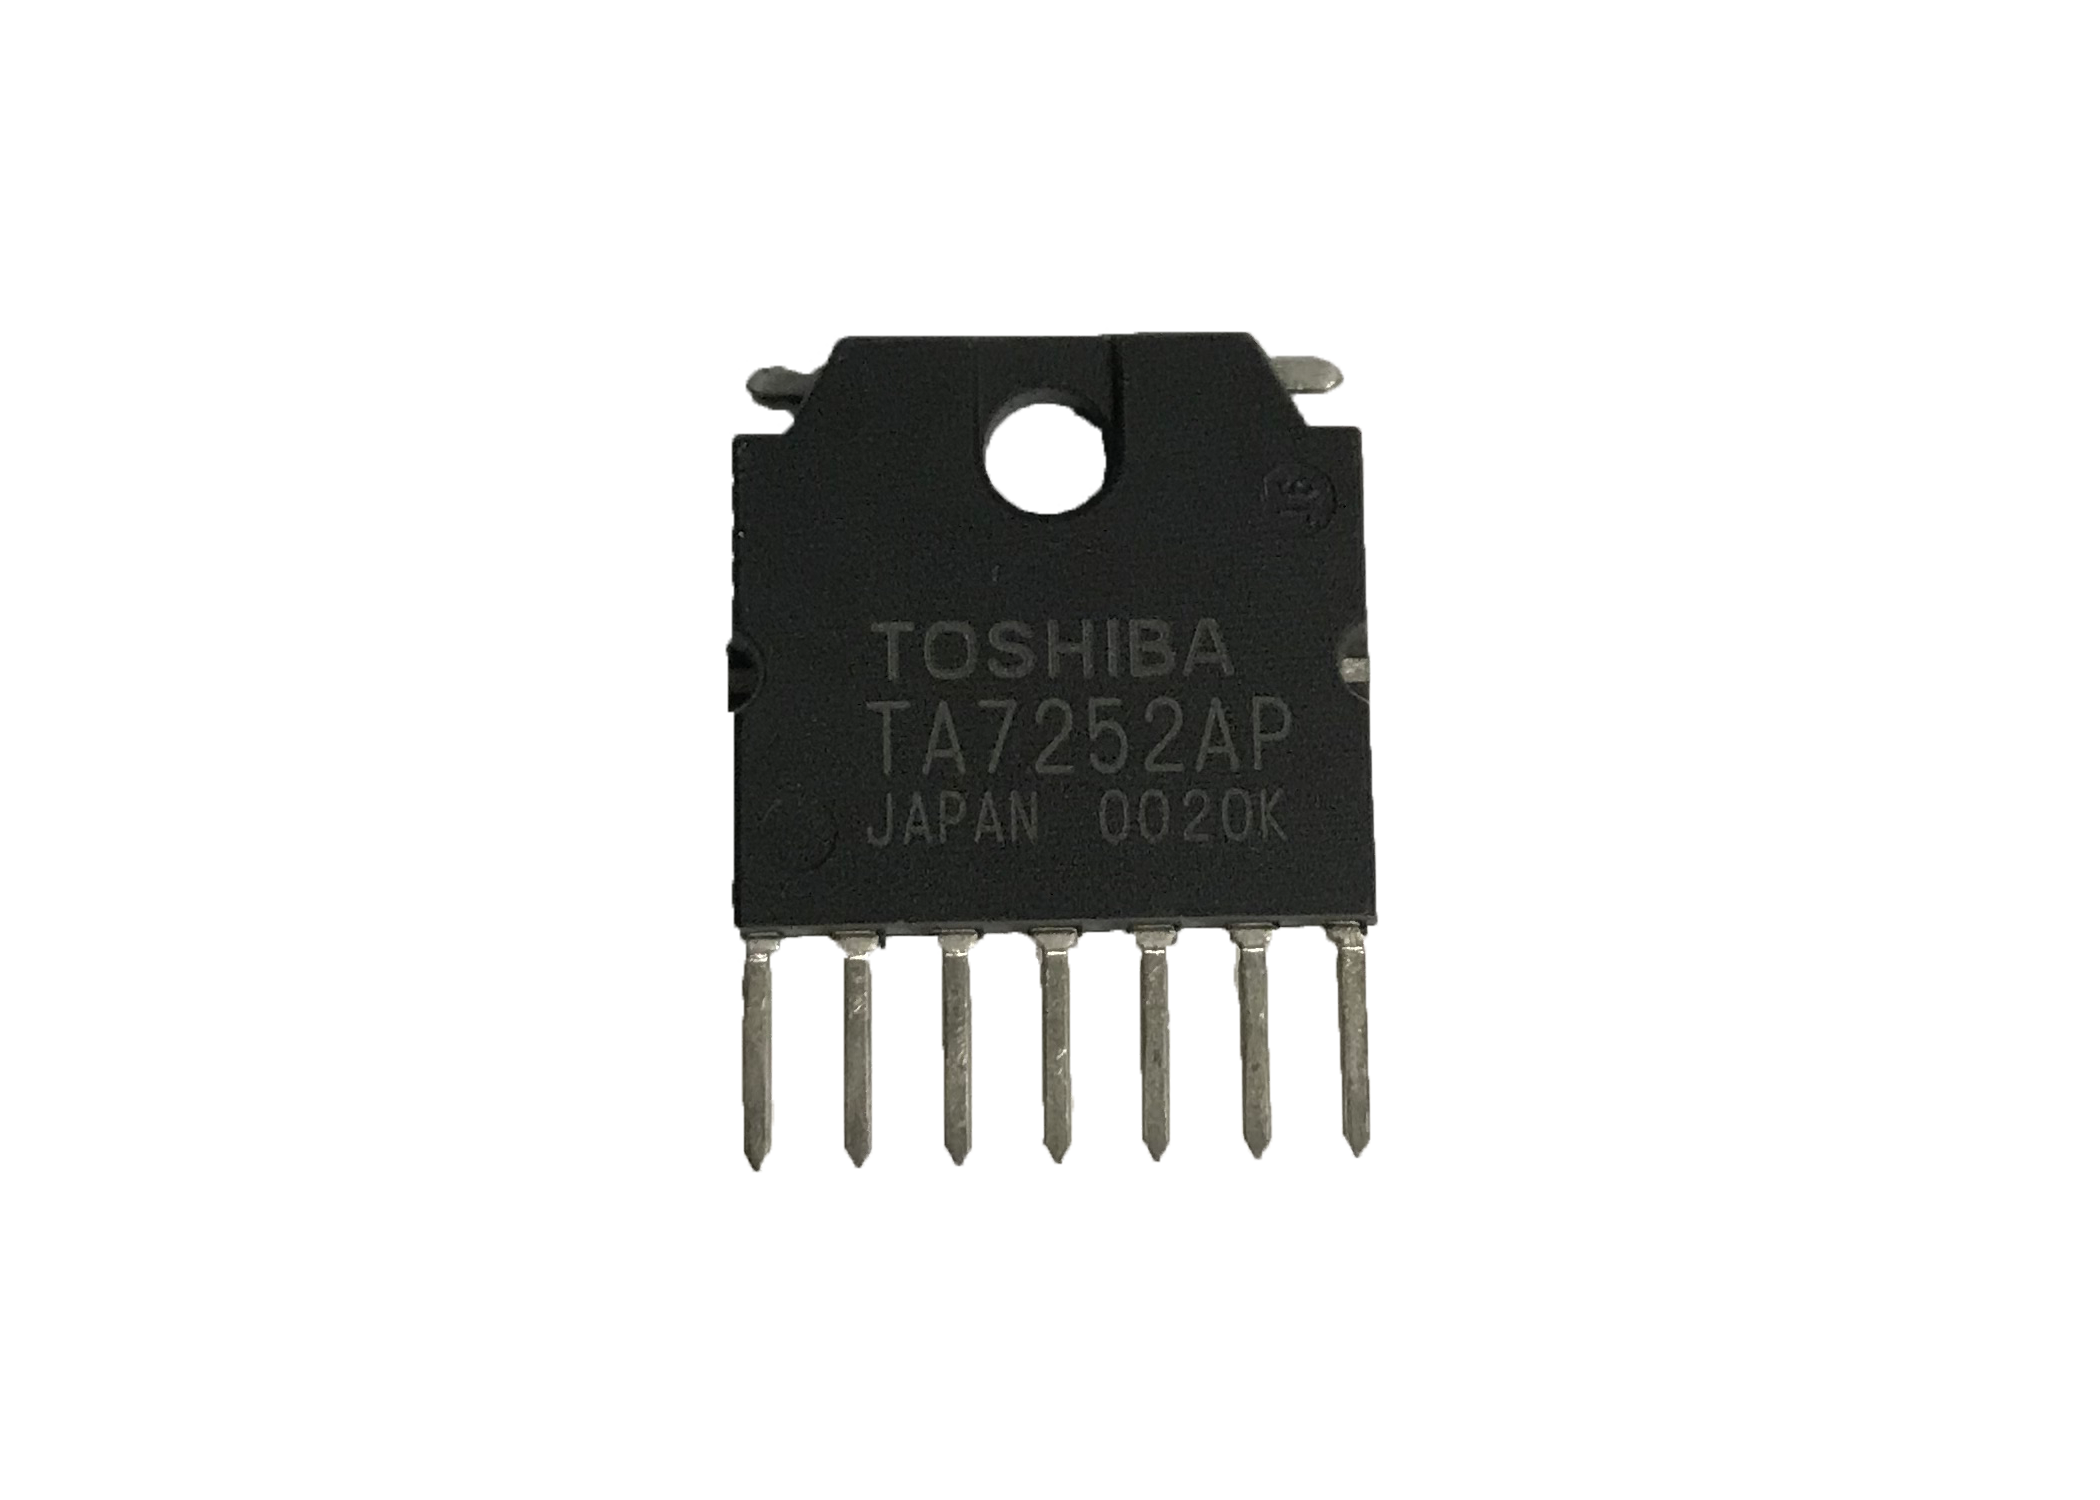 TA7252AP - EKL Audio Amplifier For Uniden Cb Radios